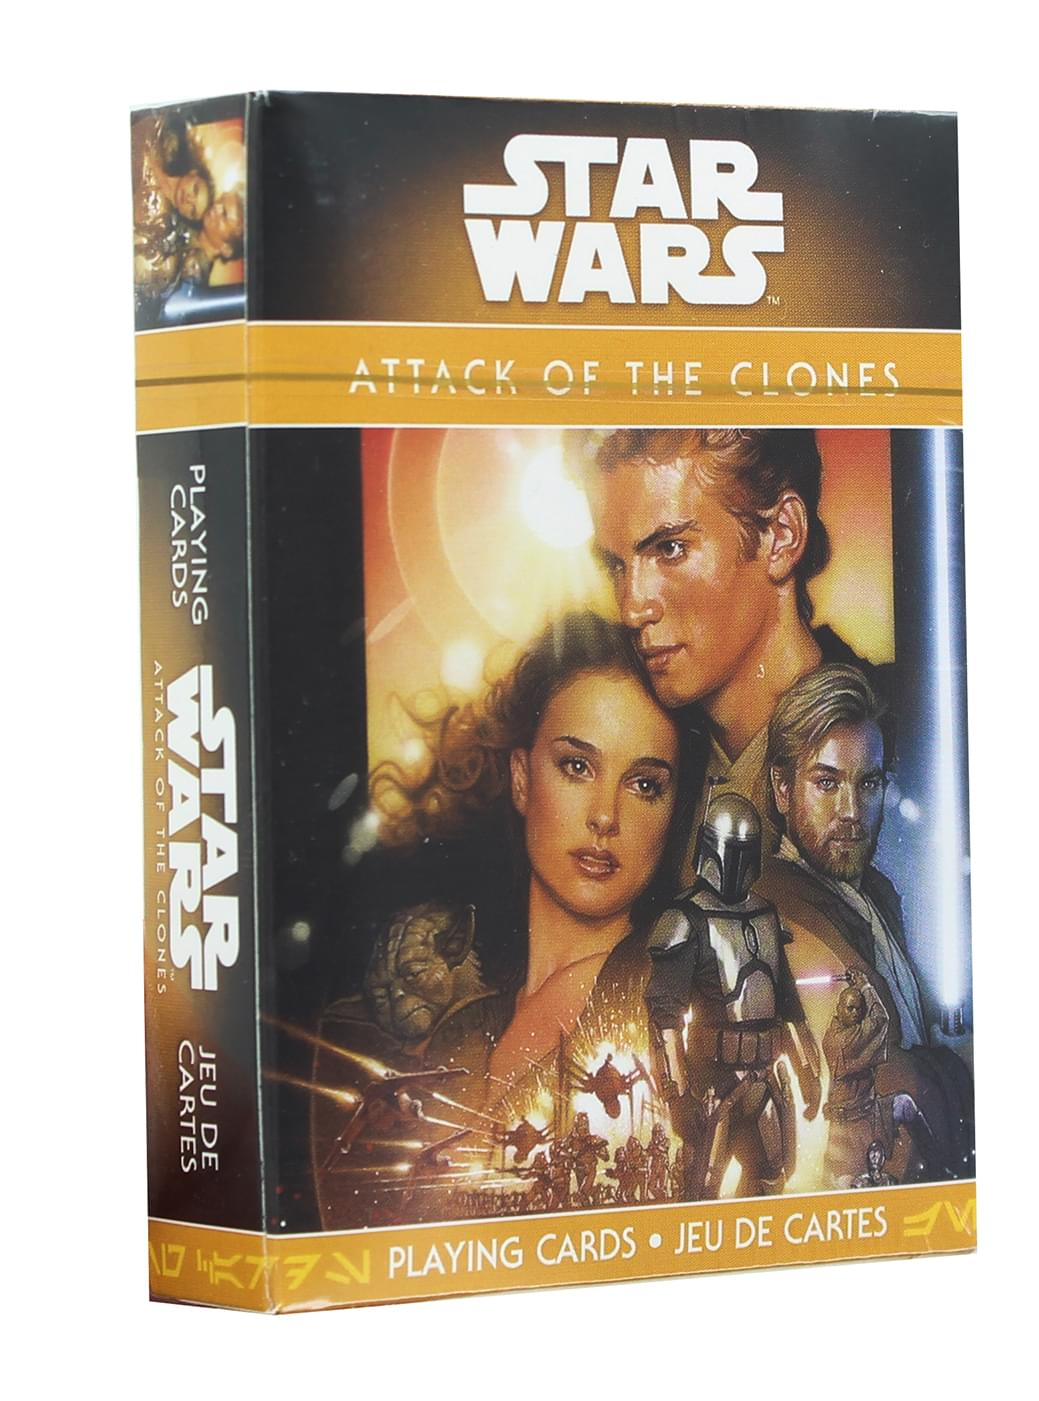 Star Wars Attack of the Clones Playing Cards